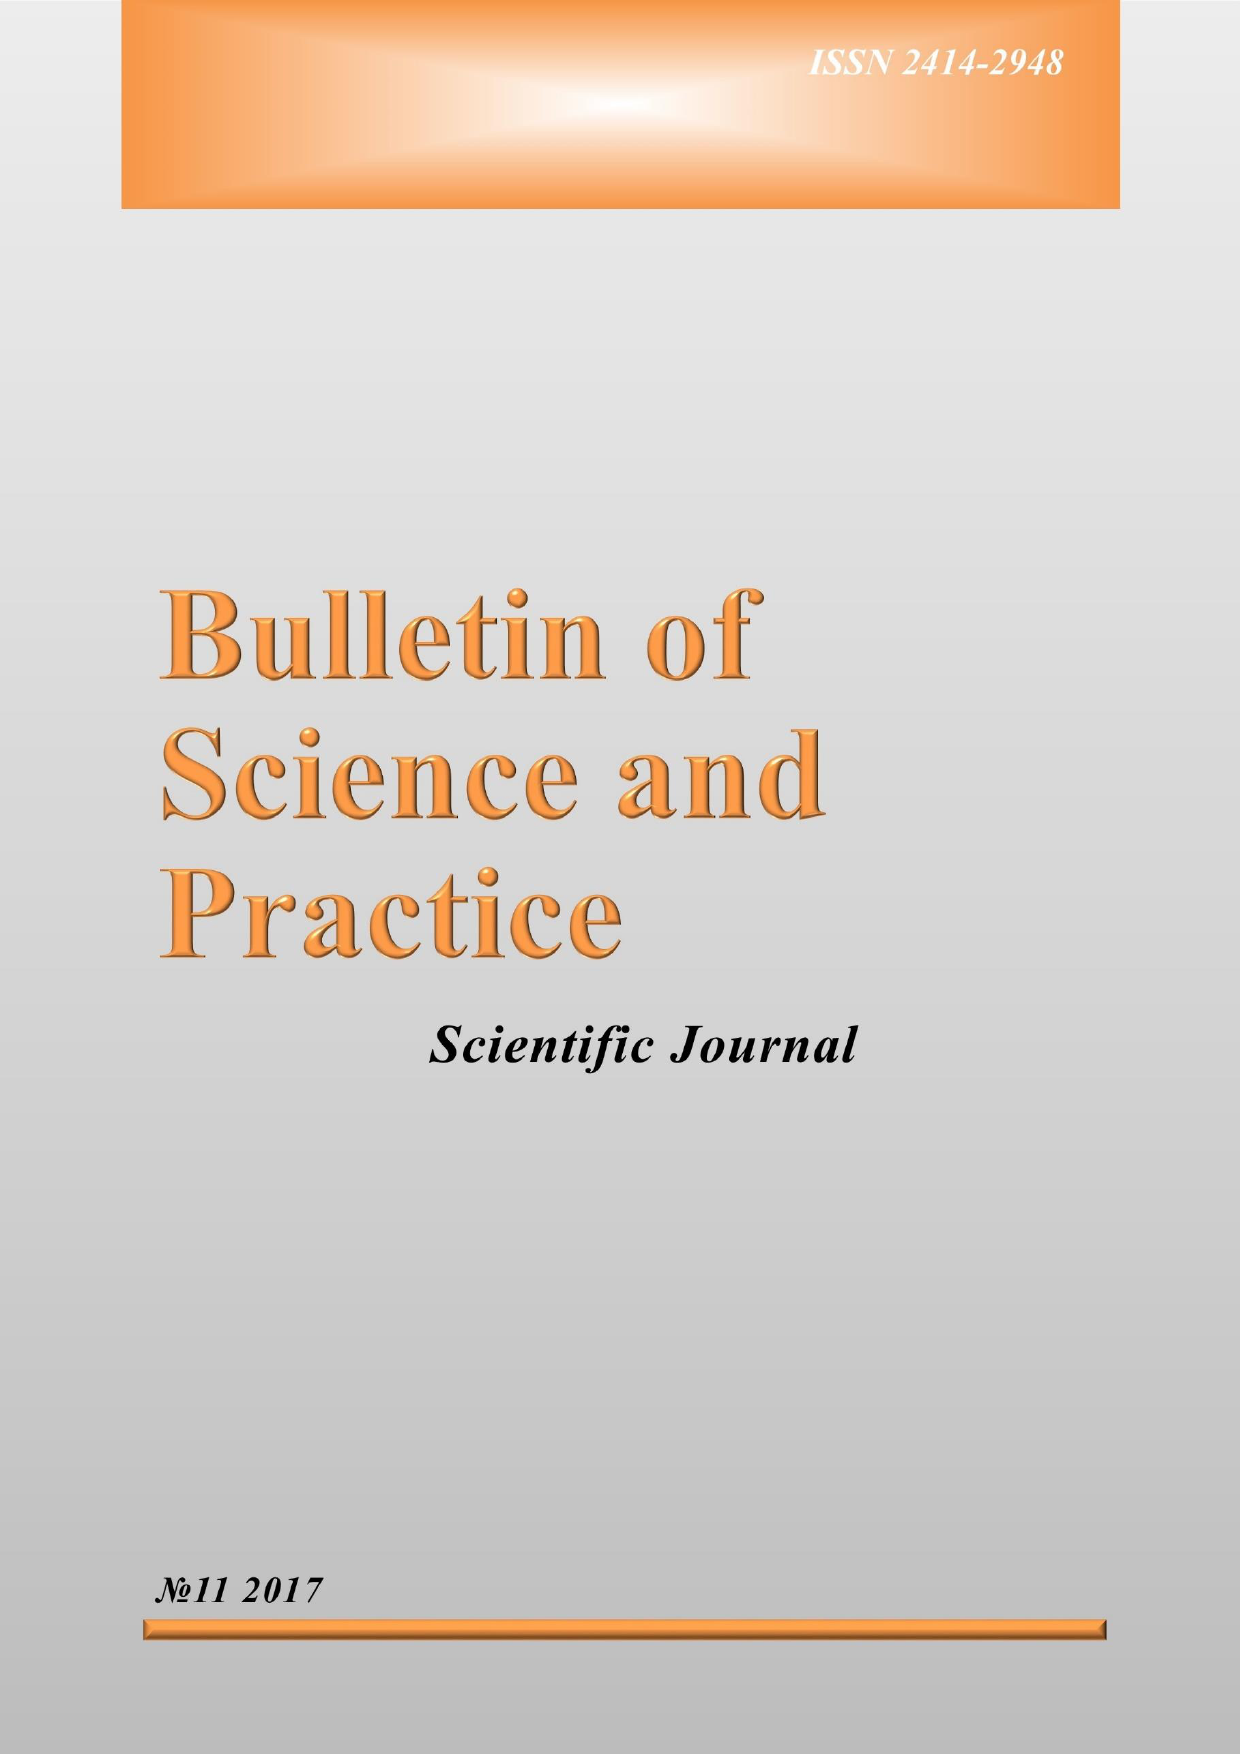 Bulletin of Science and Practice 11 (24) 2017 299fee4cc9a